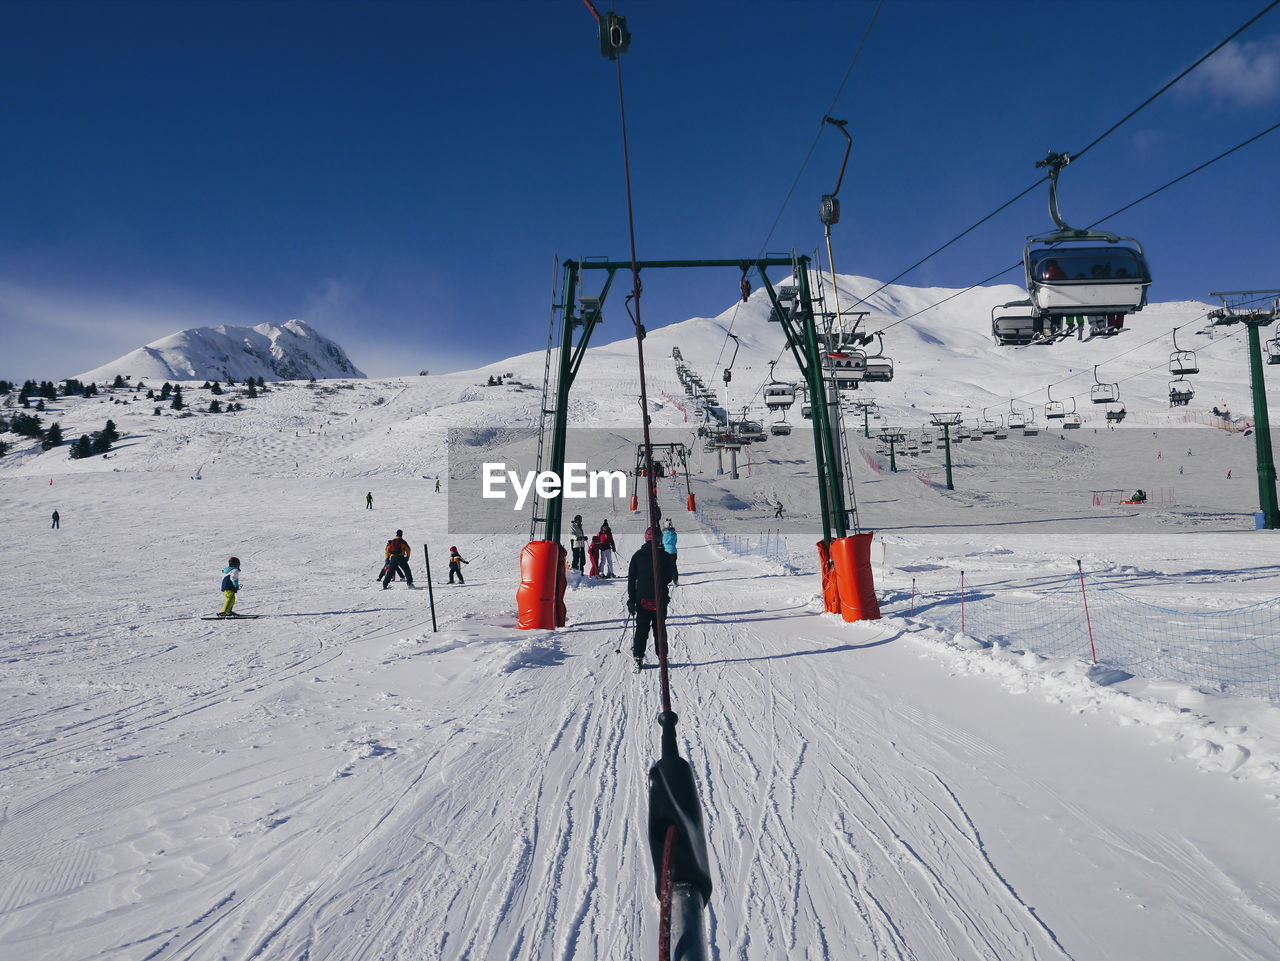 People Skiing On Snow Covered Field